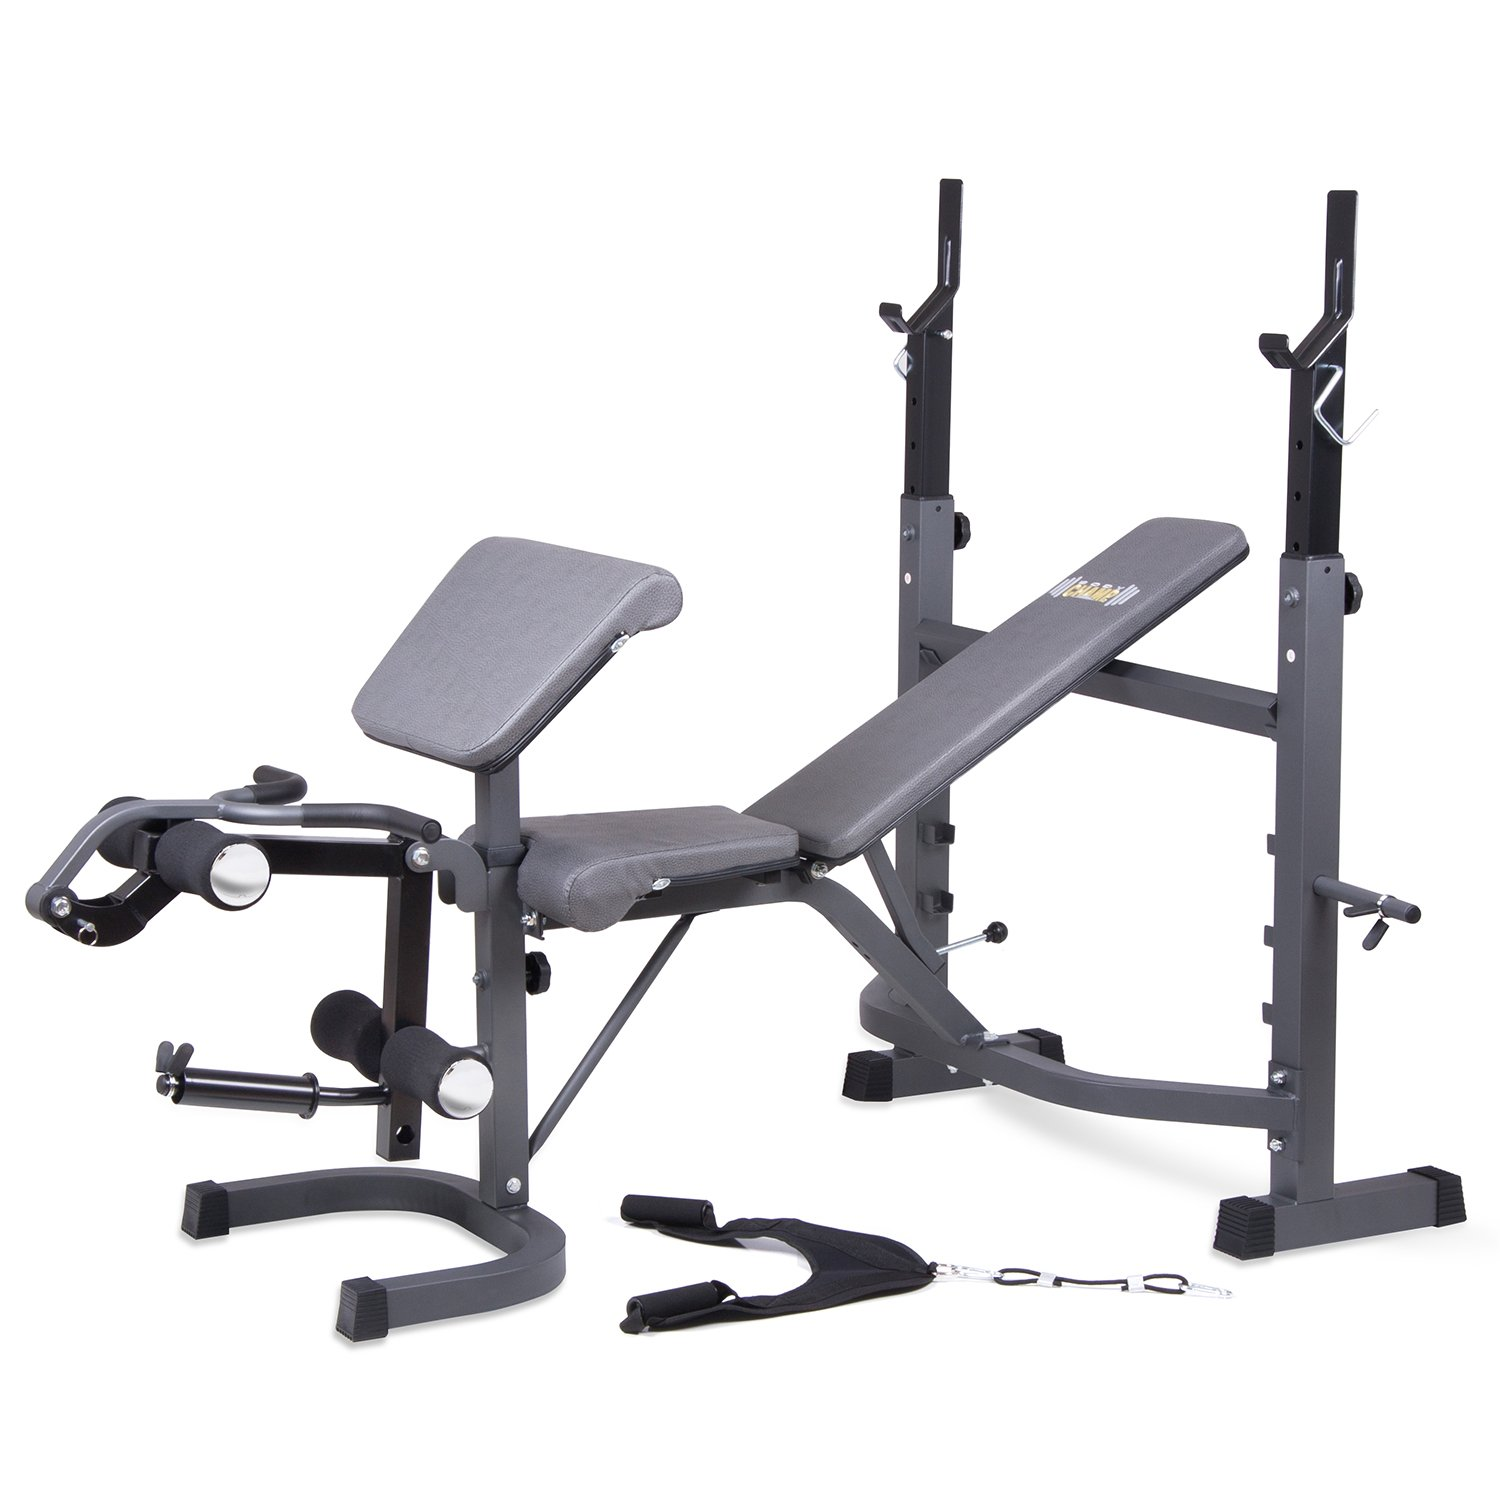 Body Champ BCB5860 Olympic Weight Bench with Preacher Curl, Leg Developer and Ab Crunch Handle / Home Gym Fitness